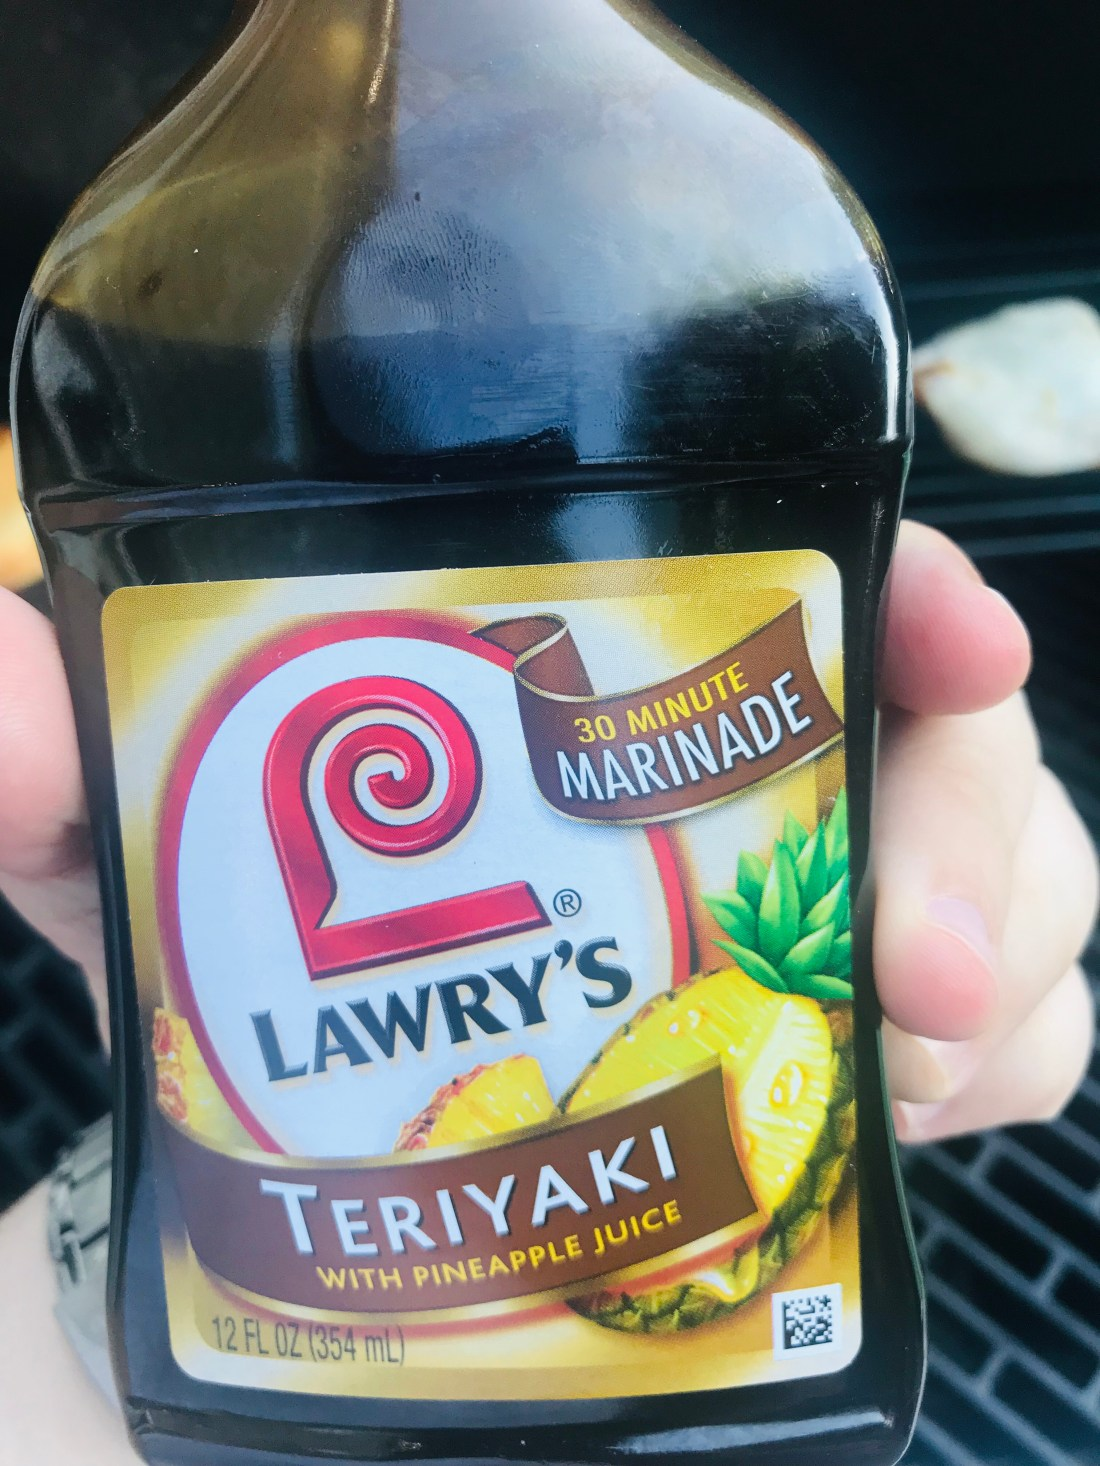 Lawry's Teriyaki Marinade with Pineapple Juice